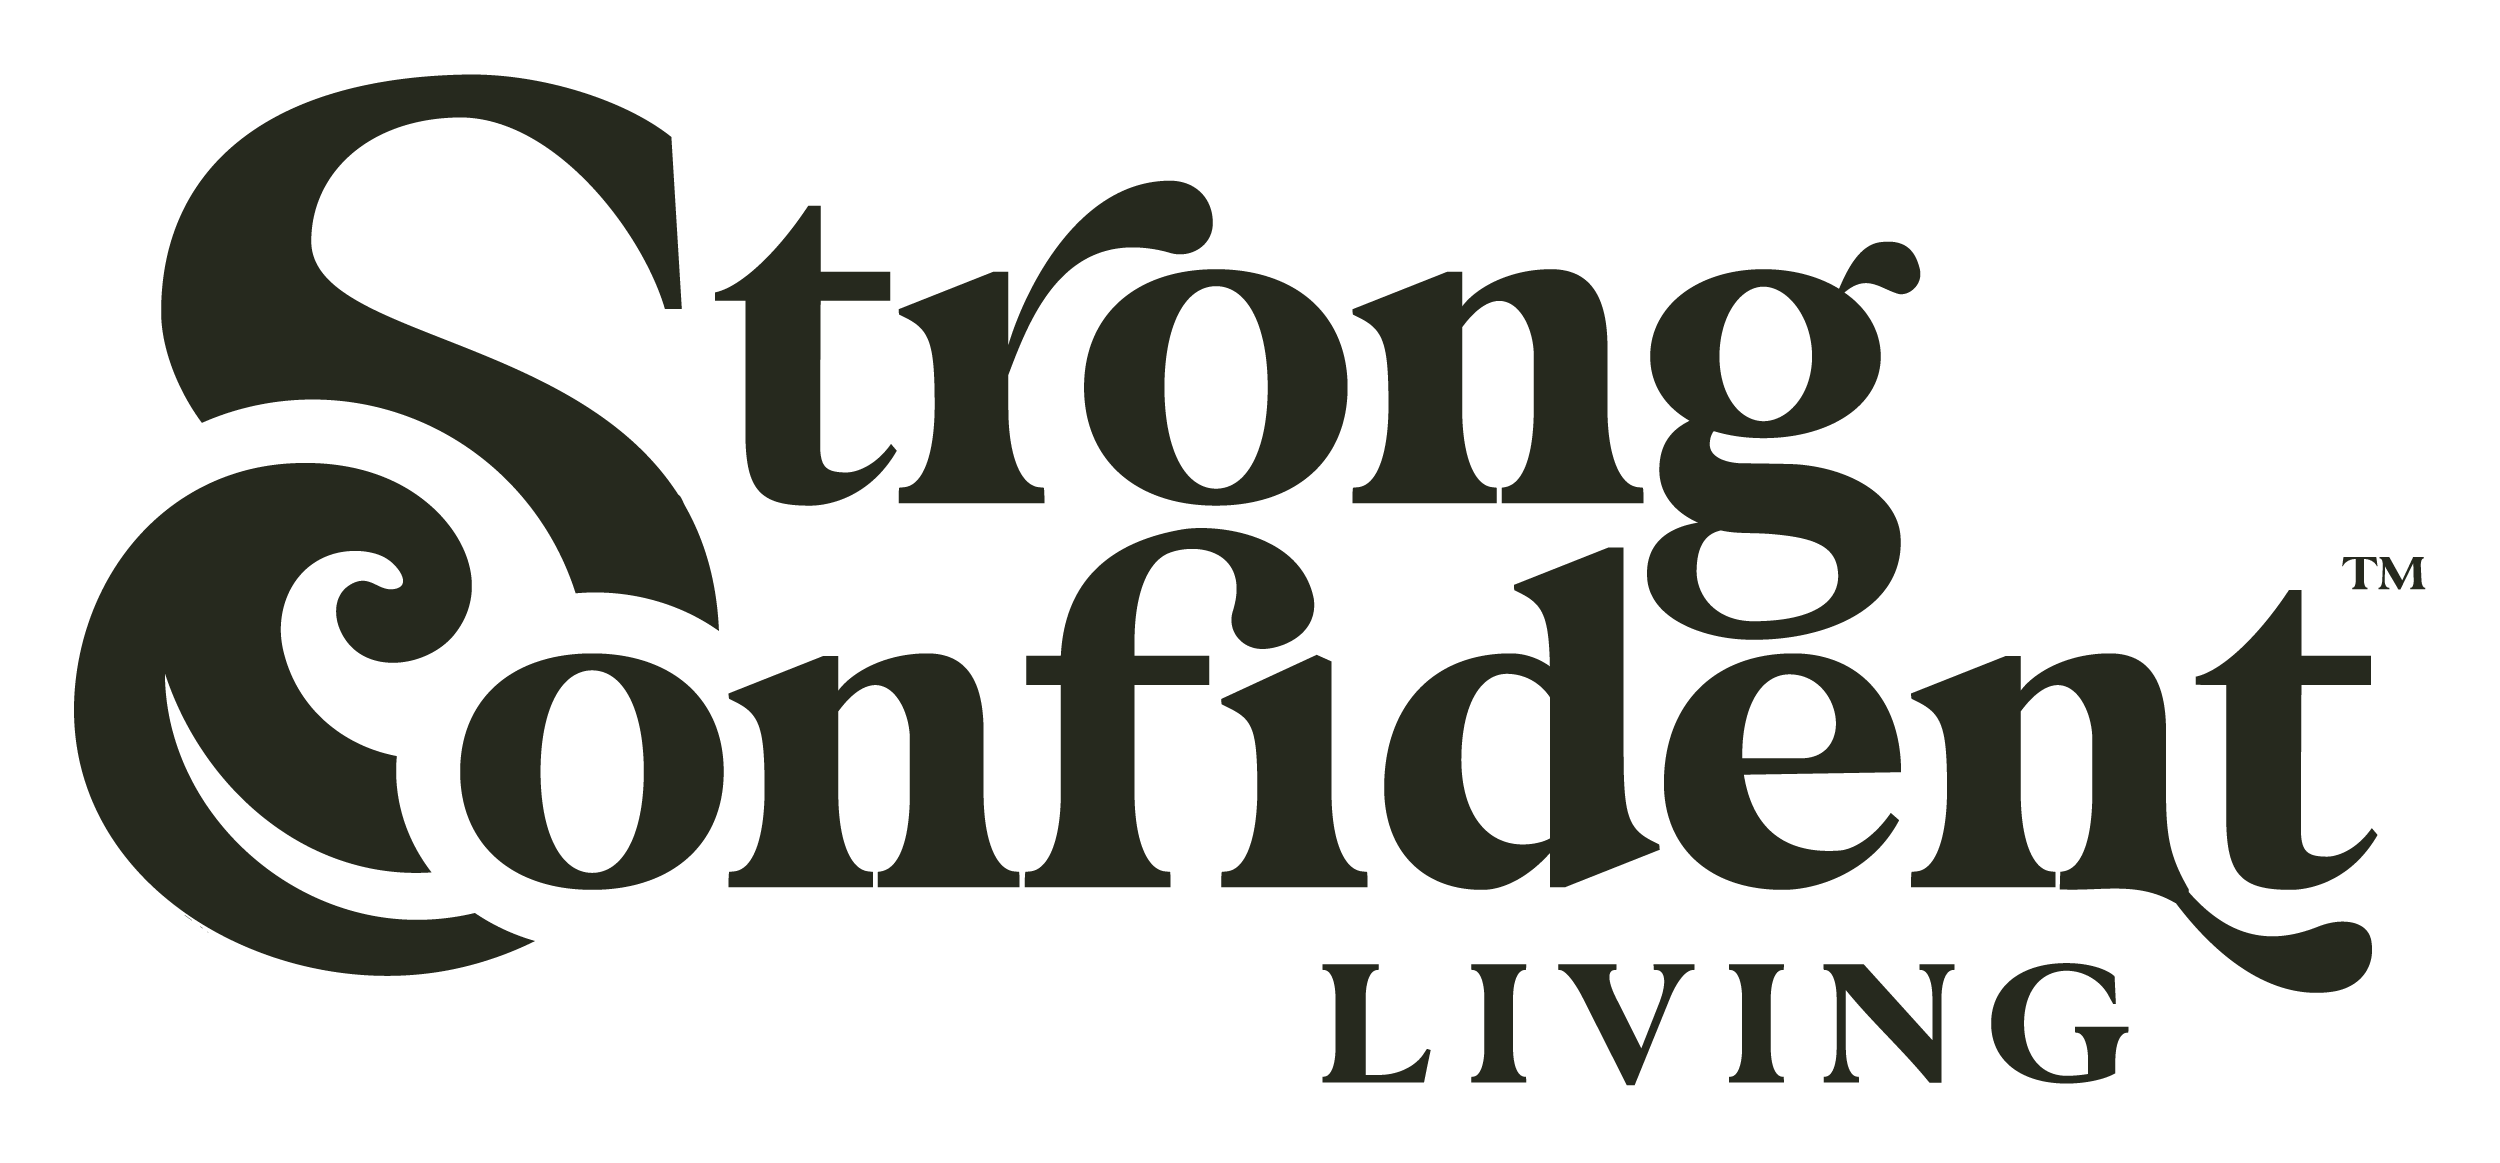 Strong Confident Living